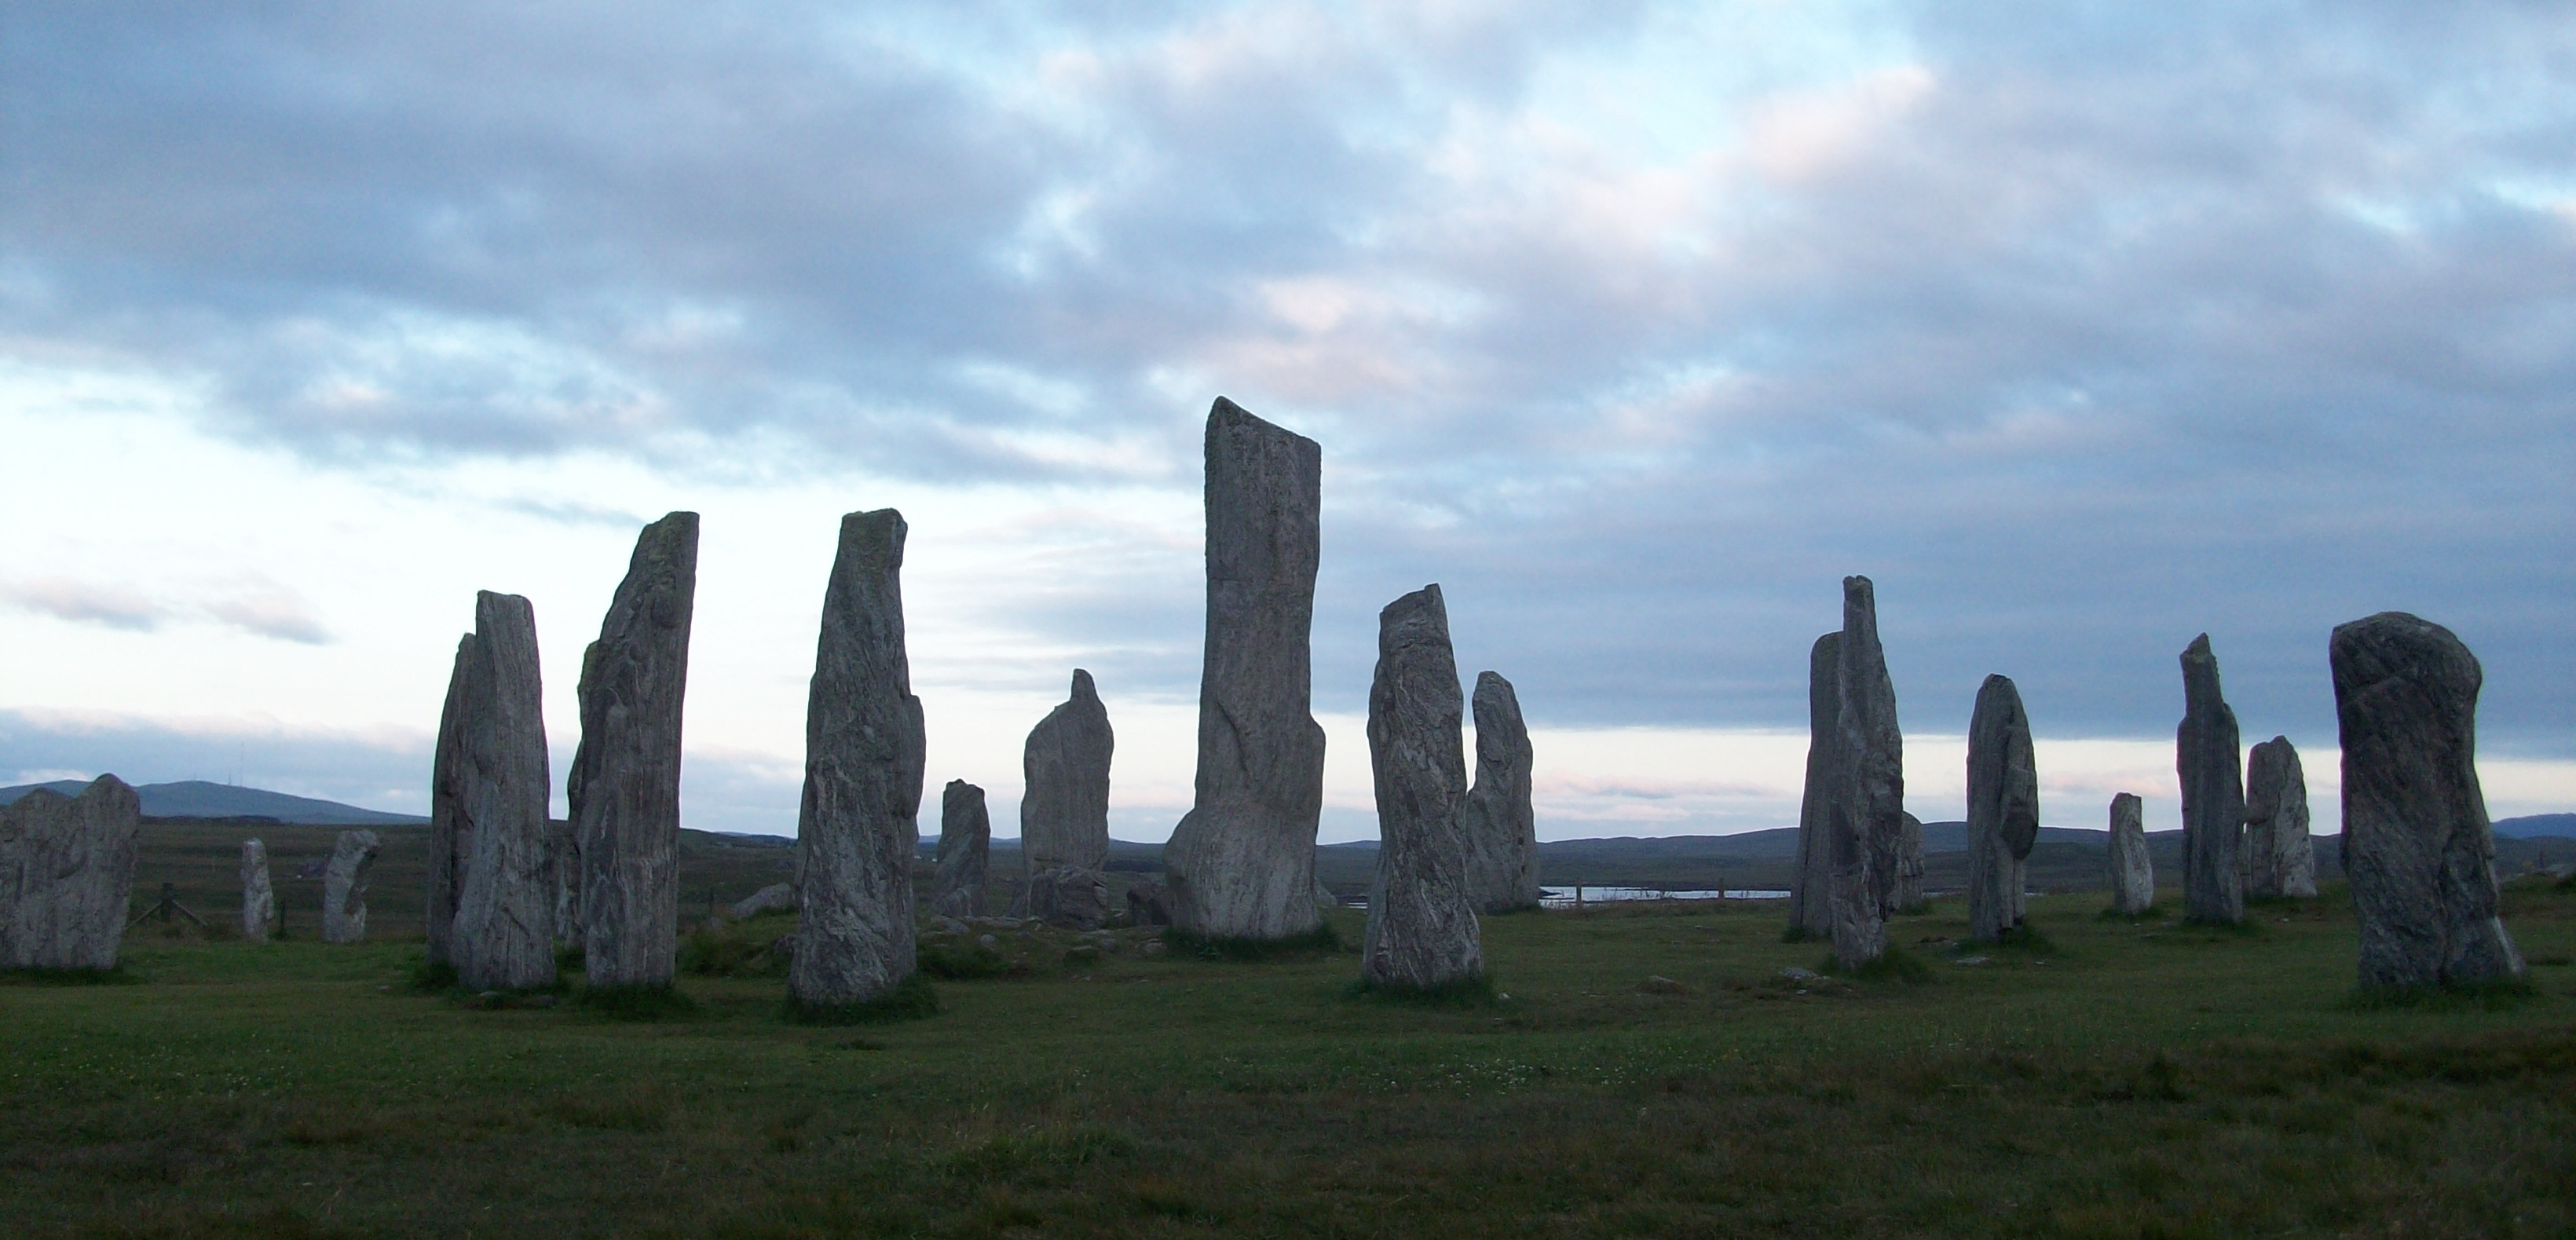 Callanish Stones on the Isle of Lewis.